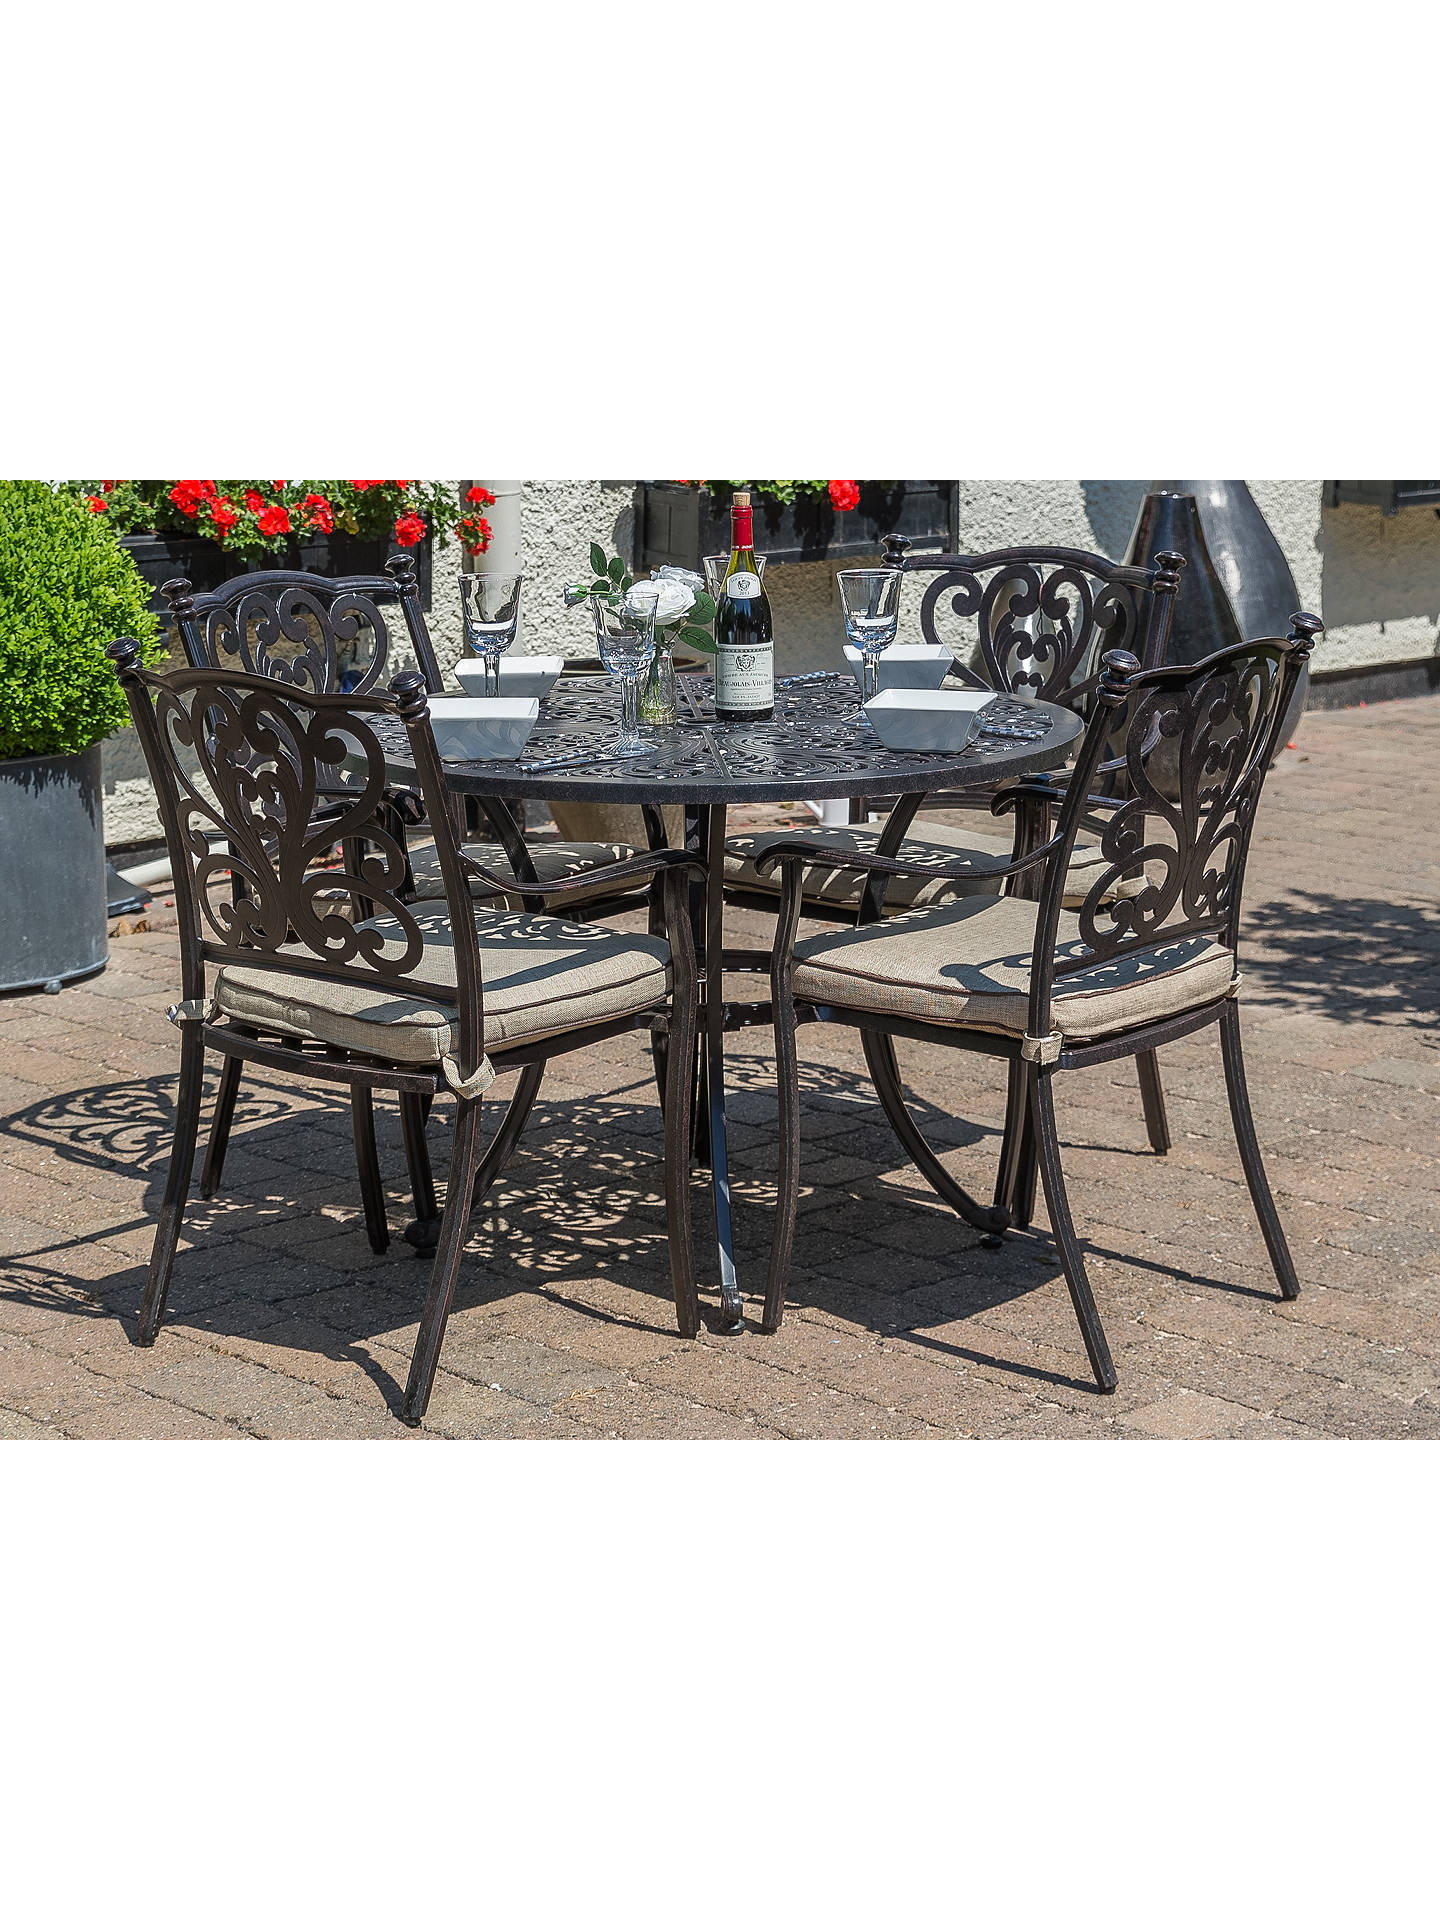 Buy LG Outdoor Devon 4 Seater Garden Dining Table and Chairs Set with Parasol, Bronze Online at johnlewis.com